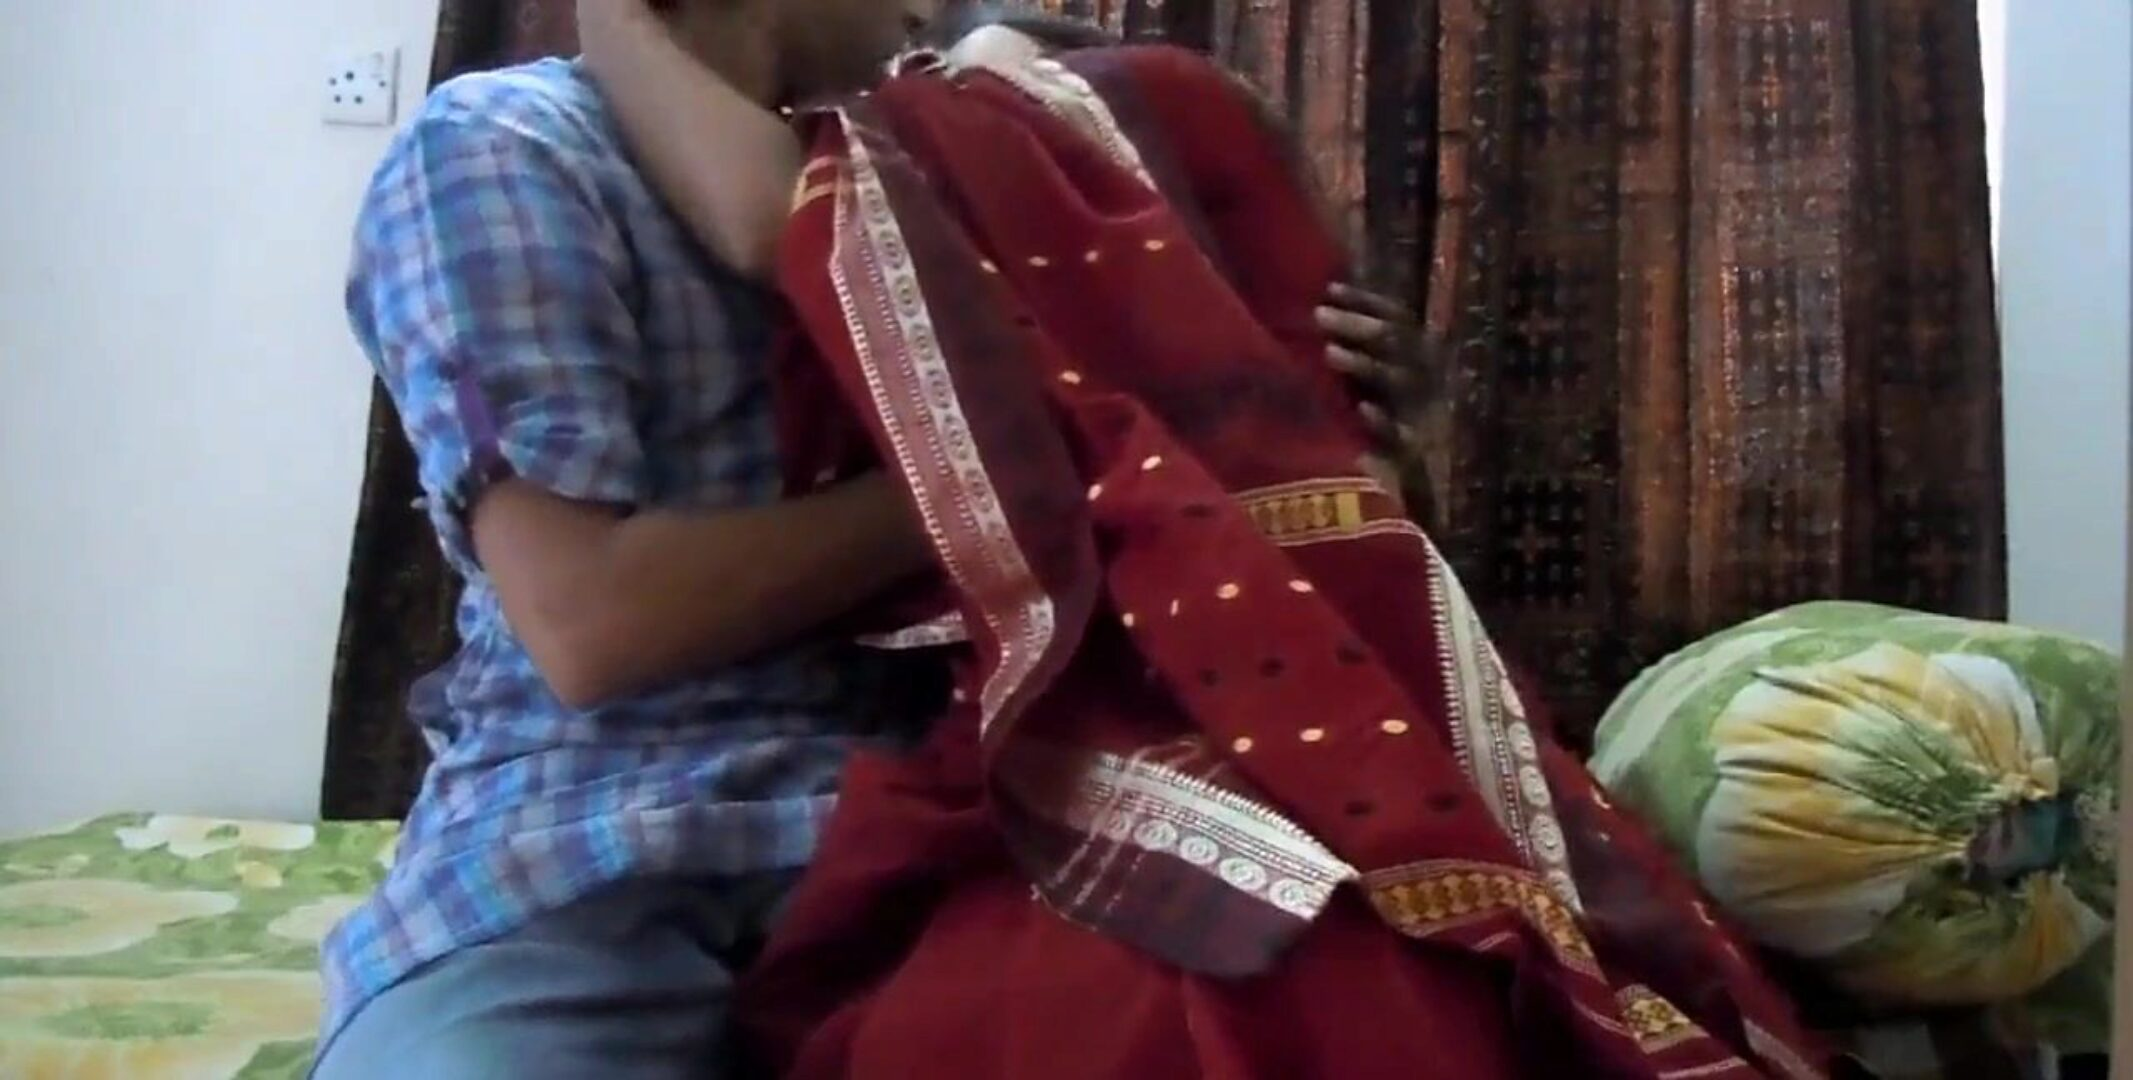 Bangla Couple Has Intimate and Horny Sex in a Hotel... Watch Bangla Couple Has Intimate and Horny Sex in a Hotel clip on xHamster - the ultimate database of free-for-all Indian Bangla Free HD porno tube episodes